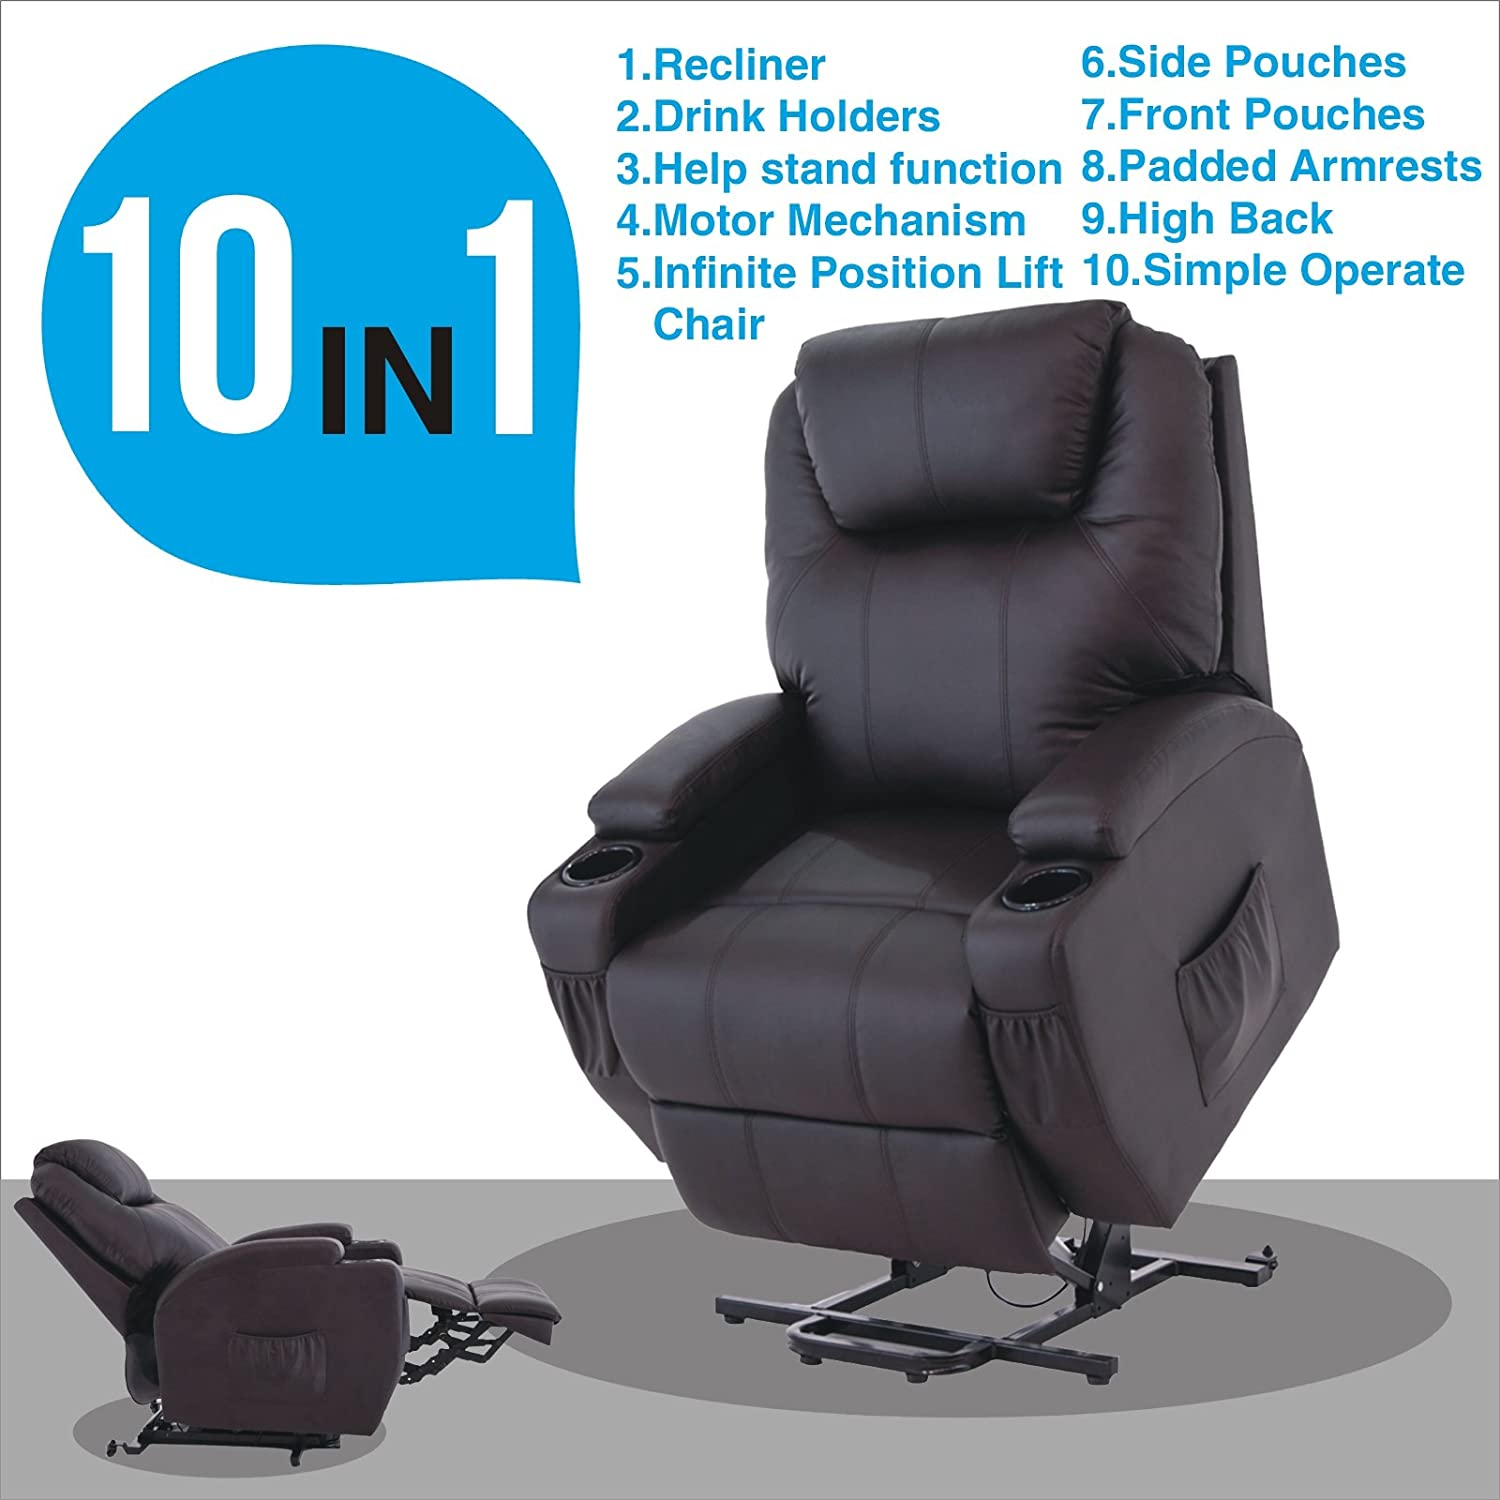 Amazon.com Power Lift Real Leather Recliner Chair Wall Hugger Lounge Seat Brown Kitchen u0026 Dining  sc 1 st  Amazon.com & Amazon.com: Power Lift Real Leather Recliner Chair Wall Hugger ... islam-shia.org